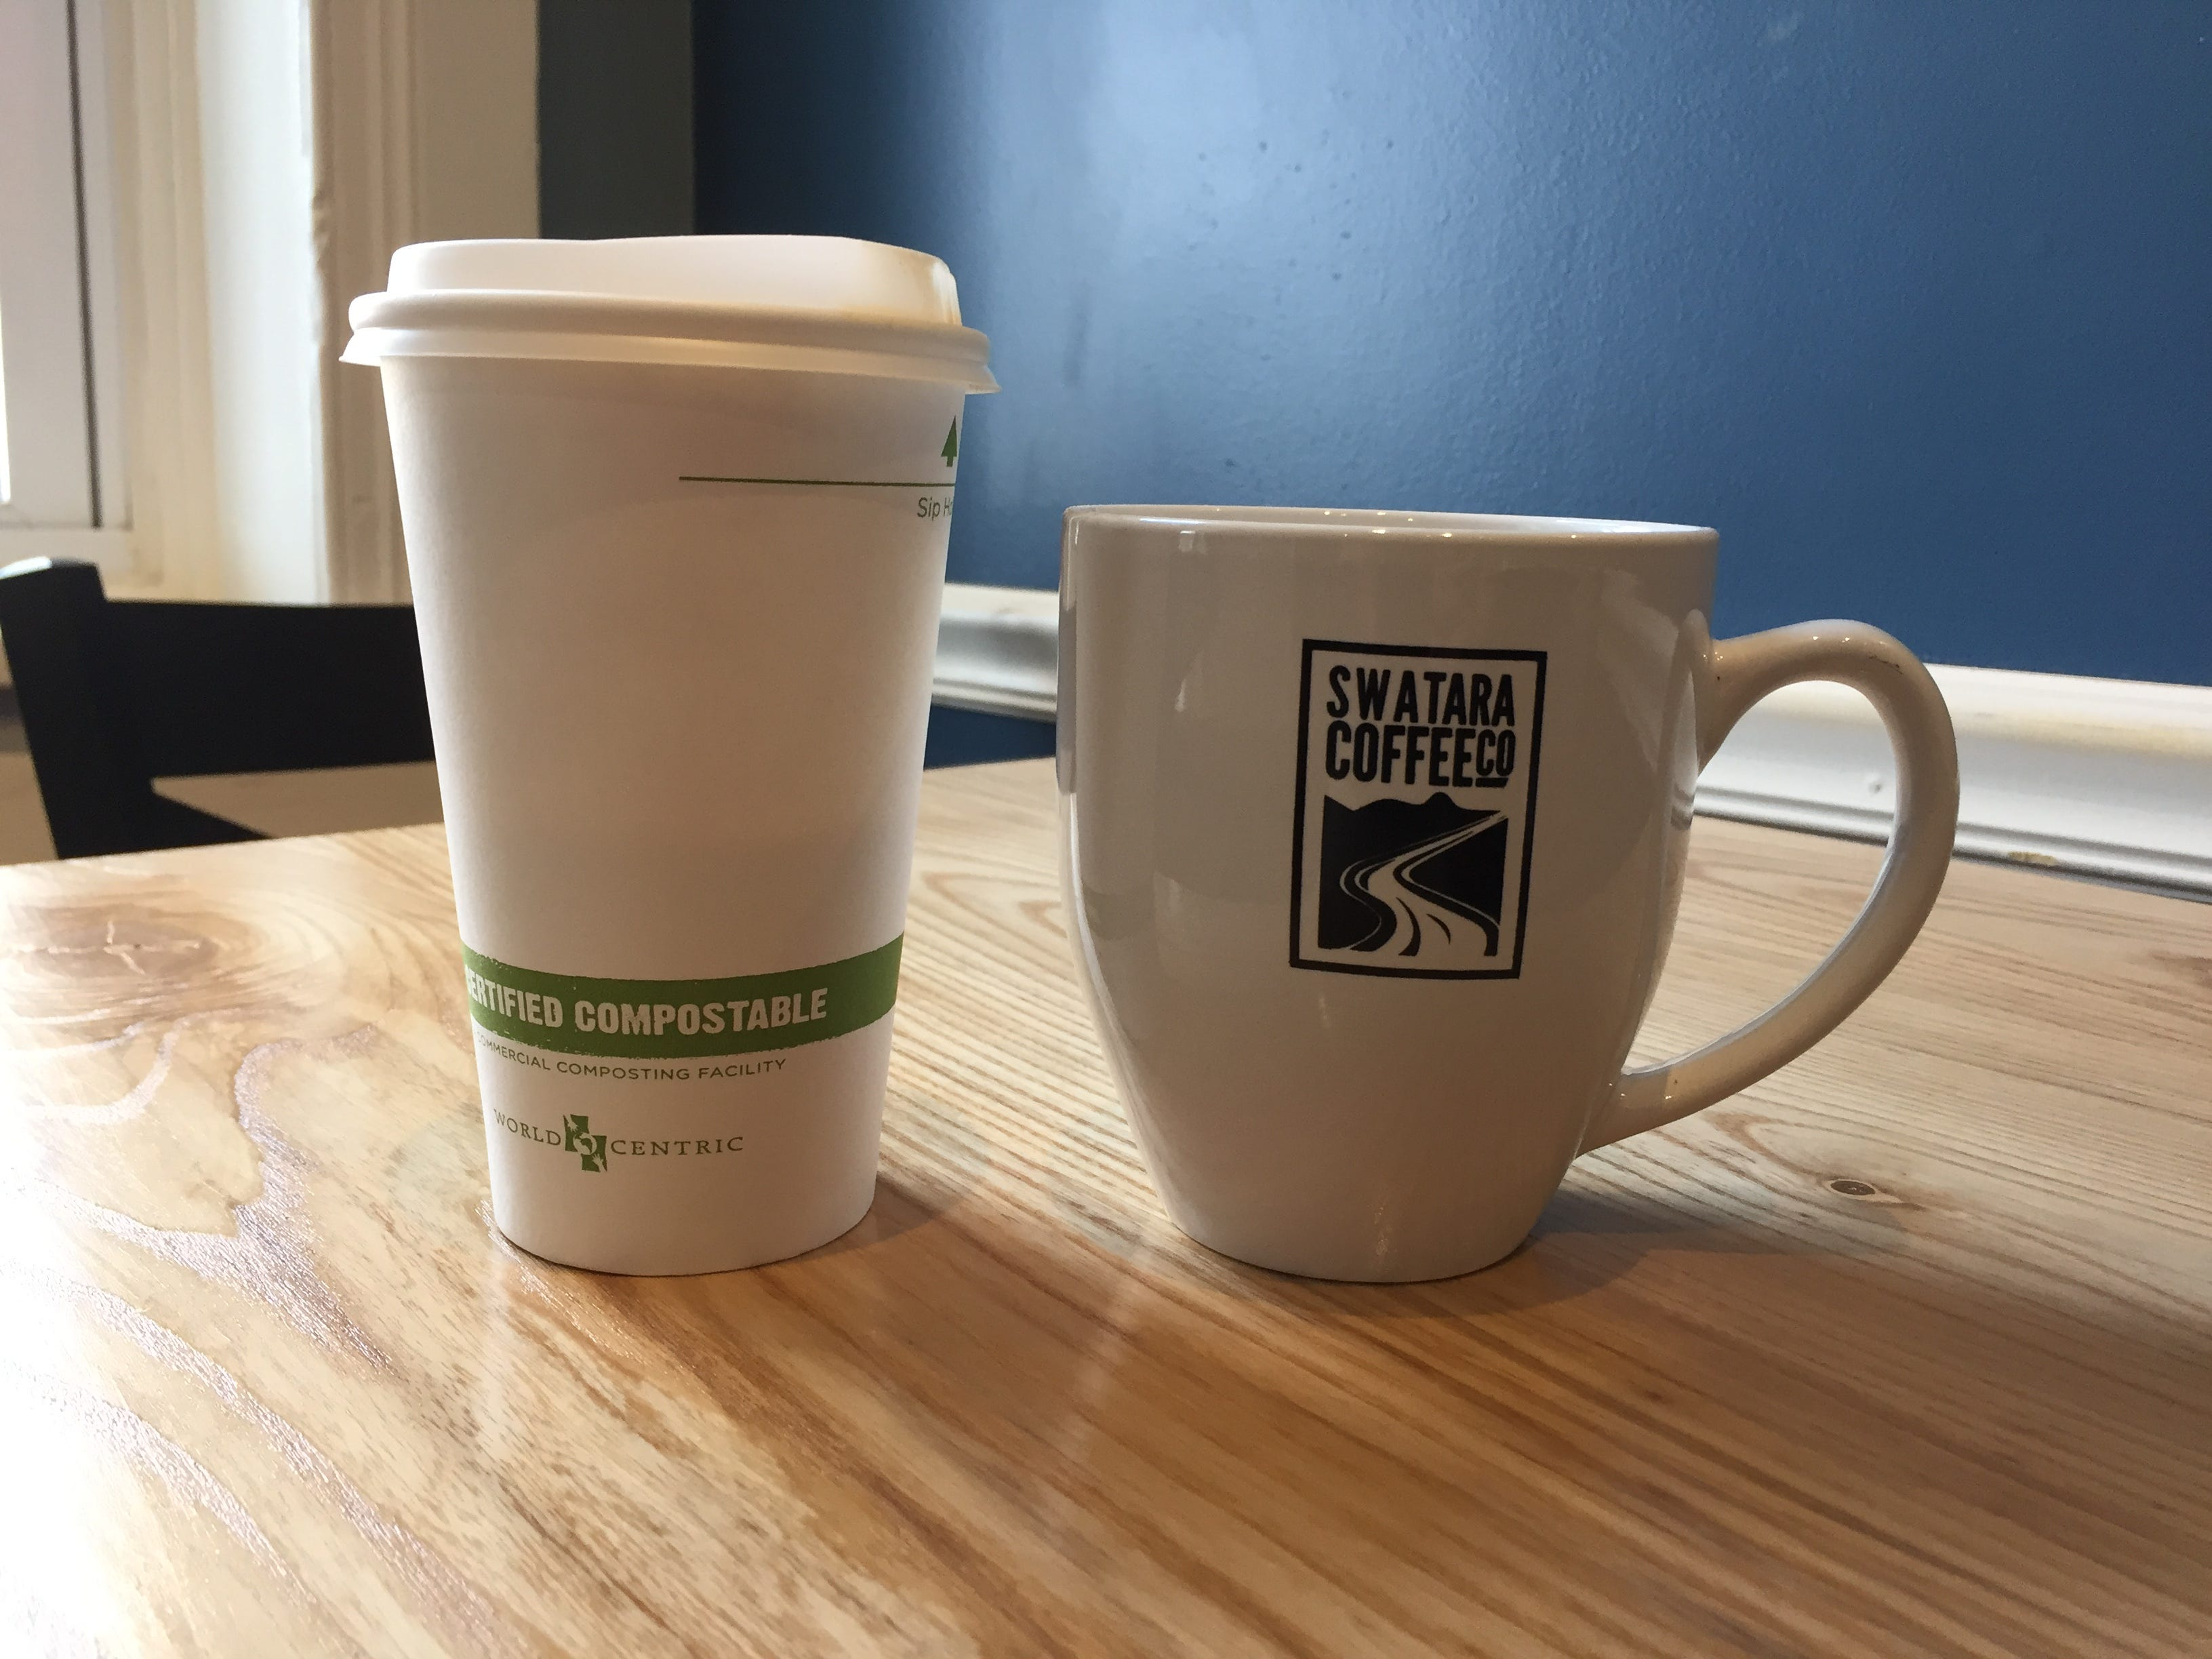 As usual, Swatara pulls out all the stops. In addition to pumpkin spice latte, they have hot apple cider, blackberry mocha and cinnamon dulce de leche for the duration of the fall season.